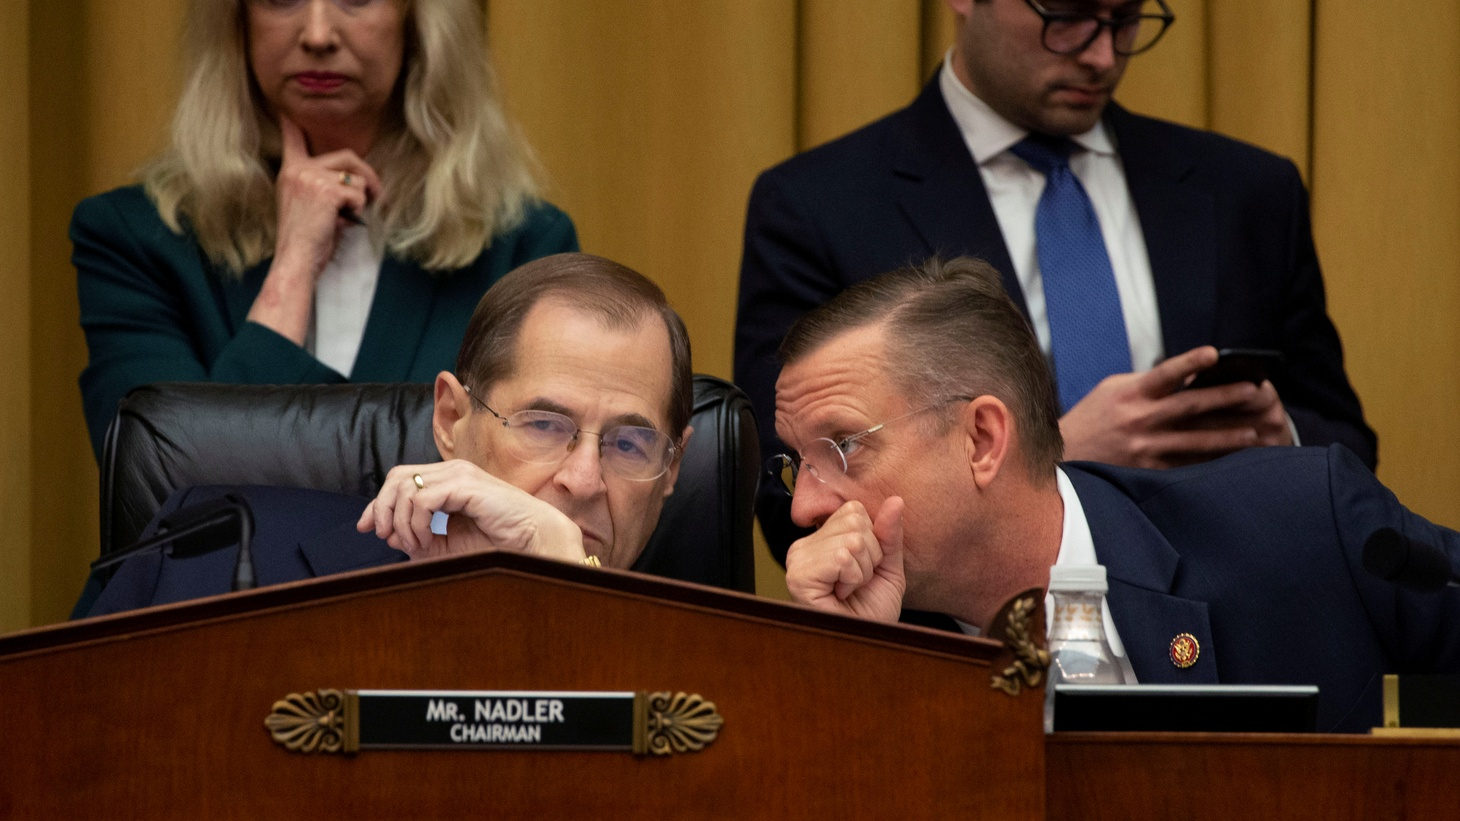 U.S. House of Representatives Judiciary Committee Chairman Jerry Nadler (D-NY) speaks with ranking Republican member Rep Doug Collins (R-GA) as the committee debates before voting to subpoena Special Counsel Robert Mueller's full unredacted report and the underlying evidence from his investigation into alleged Russian meddling in the 2016 election, on Capitol Hill in Washington, U.S., April, 3, 2019.